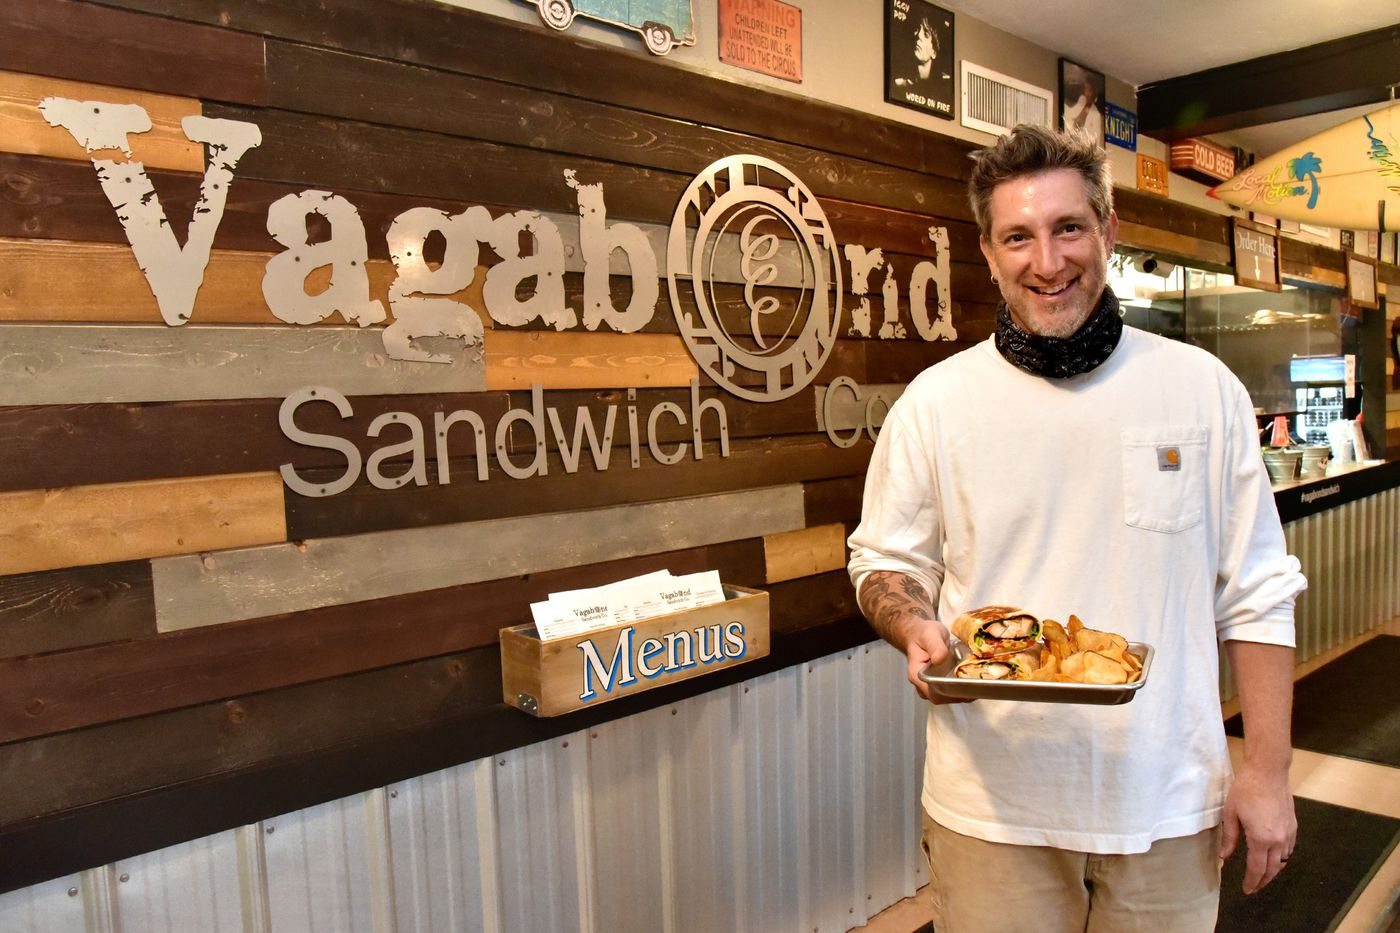 Ben Meyer, owner of the Vagabond Sandwich Company on Thomas Street in downtown Bel Air.